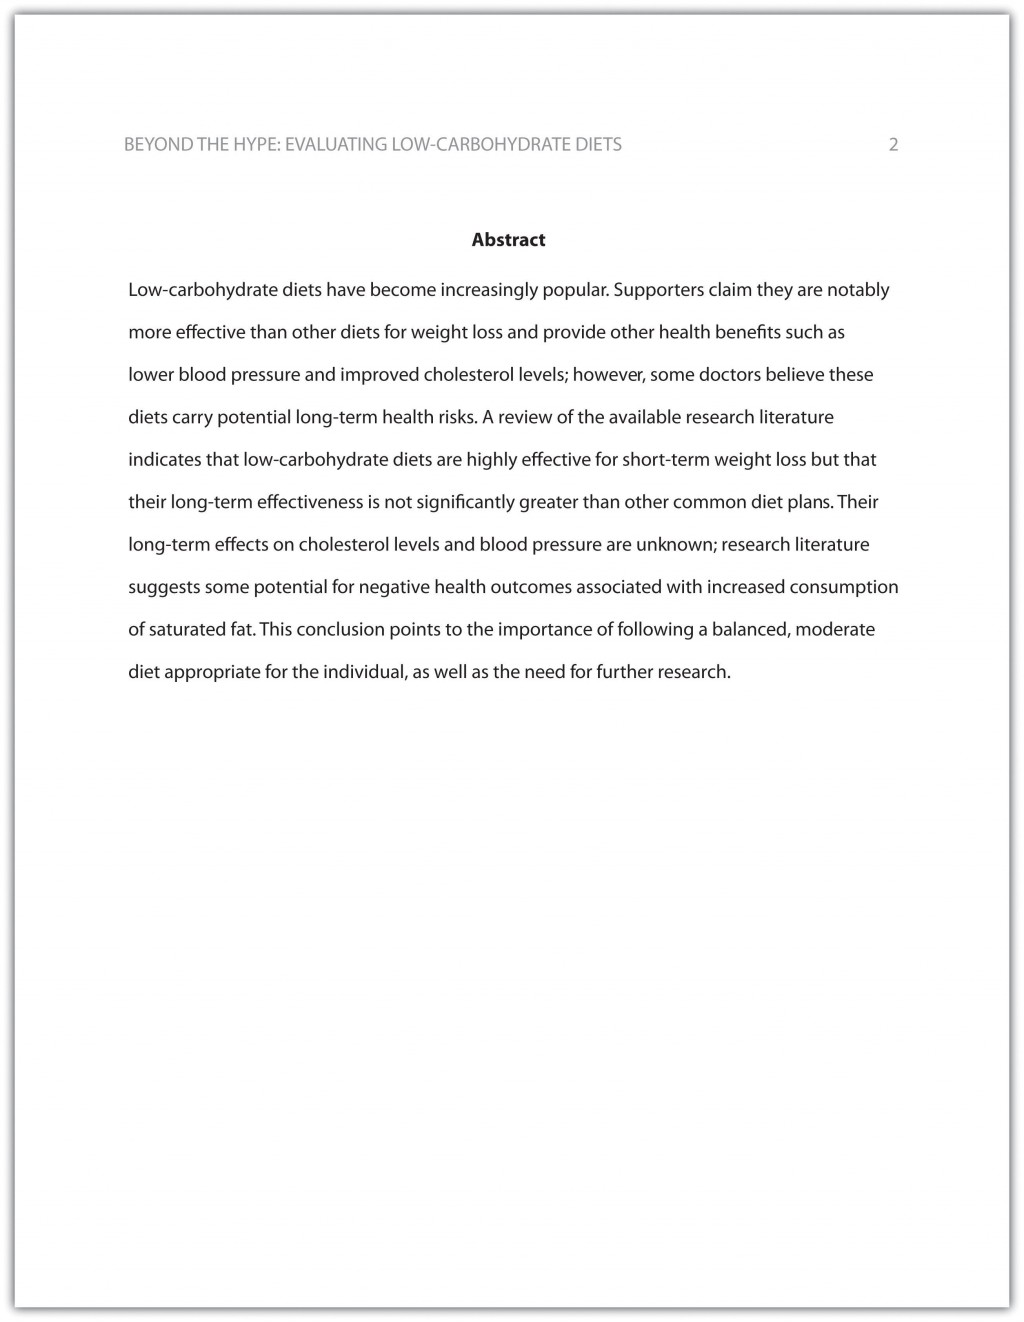 014 Research Paper College English Incredible Ideas Large